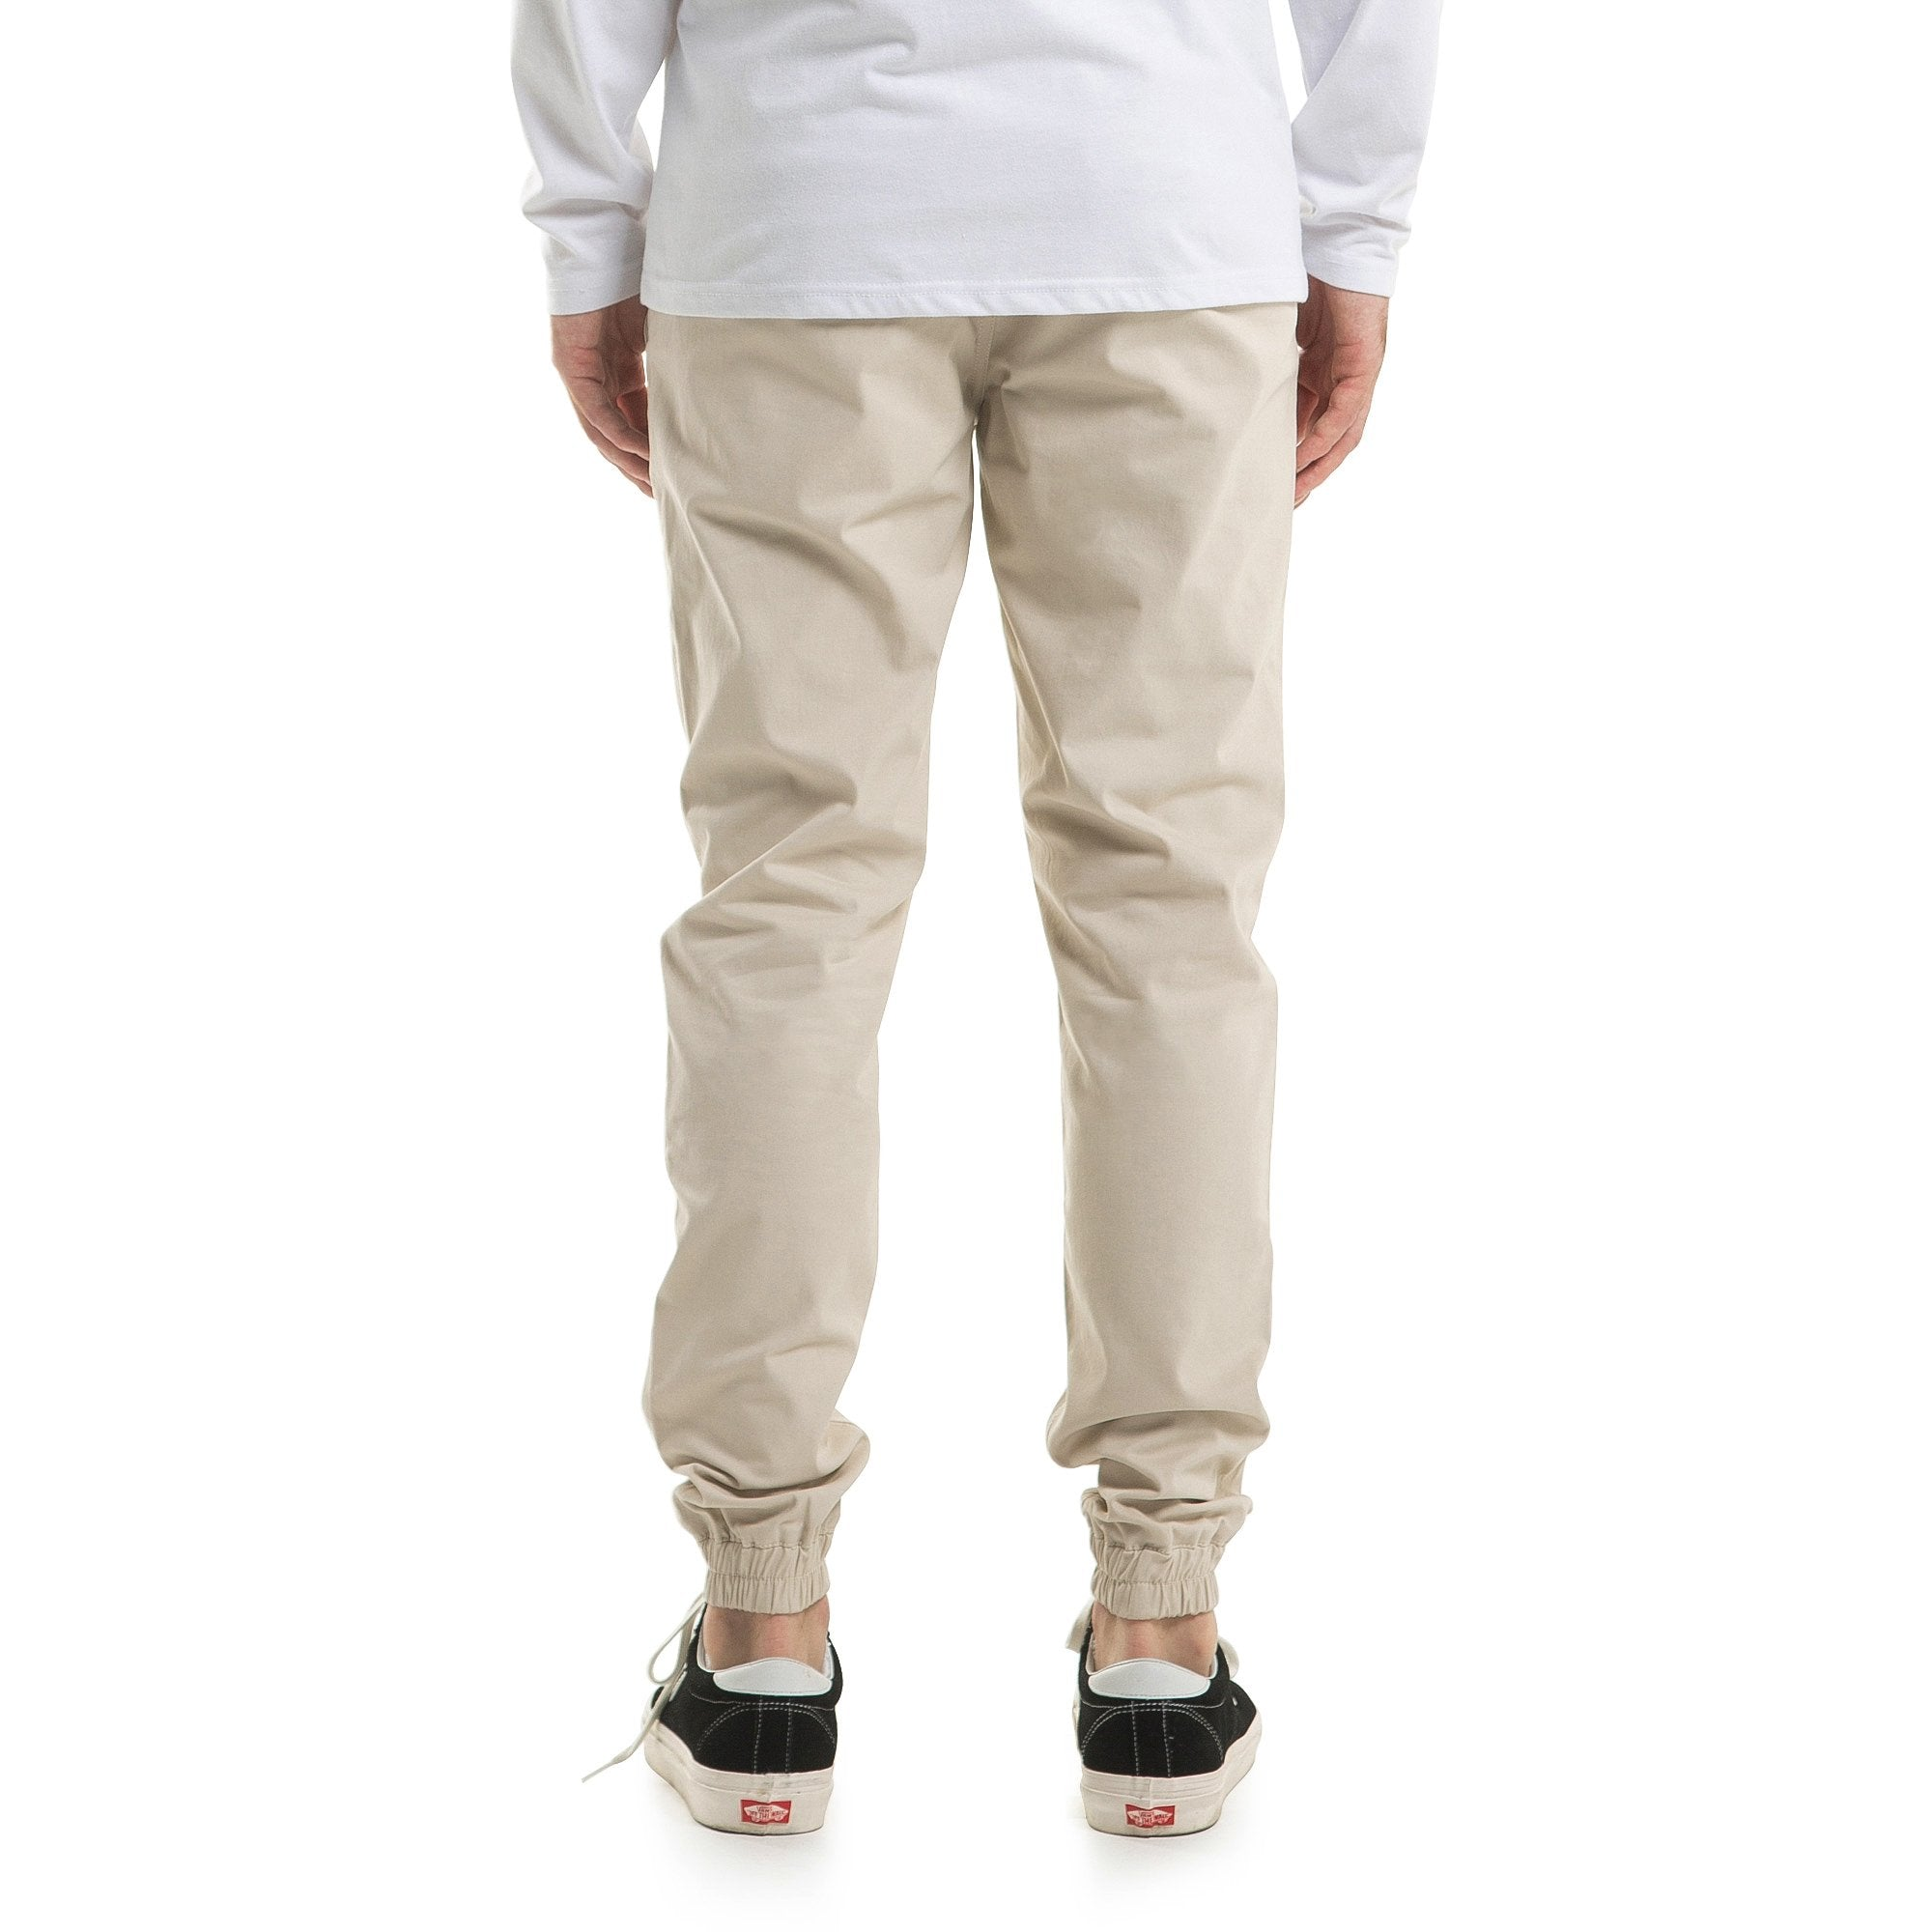 Publish Sprinter Jogger - Sand-Pants 褲款-Navy Selected Shop